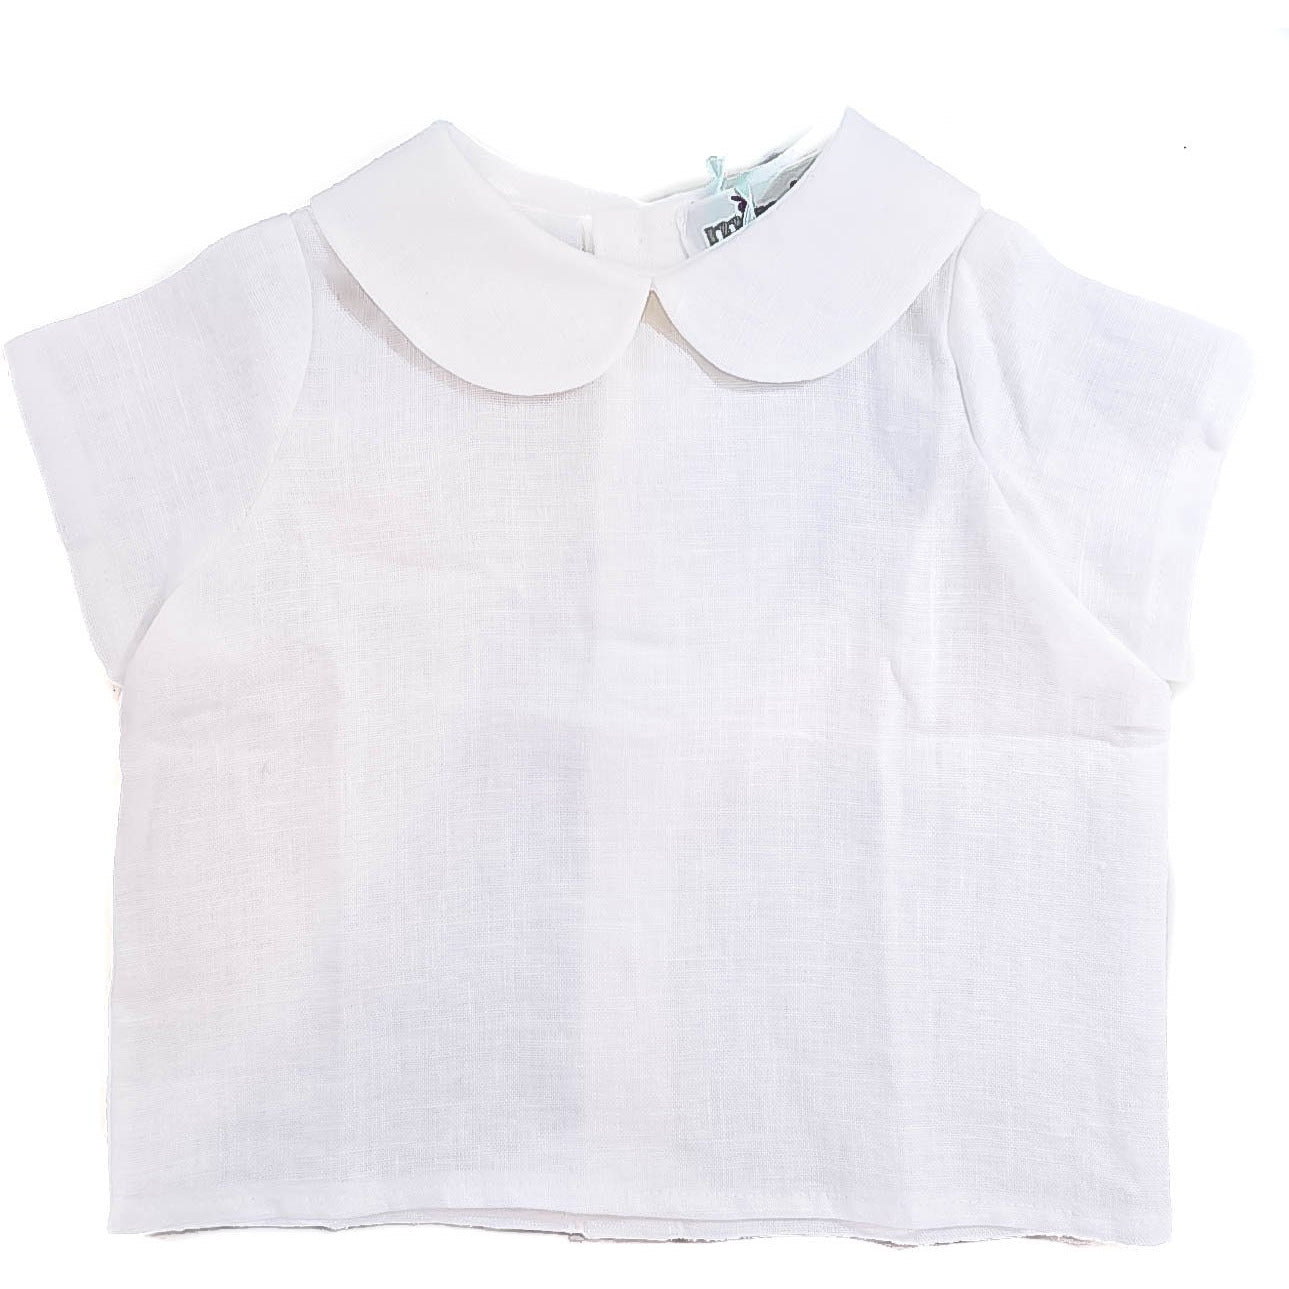 Gabri Isle White Peter Pan Collar Top